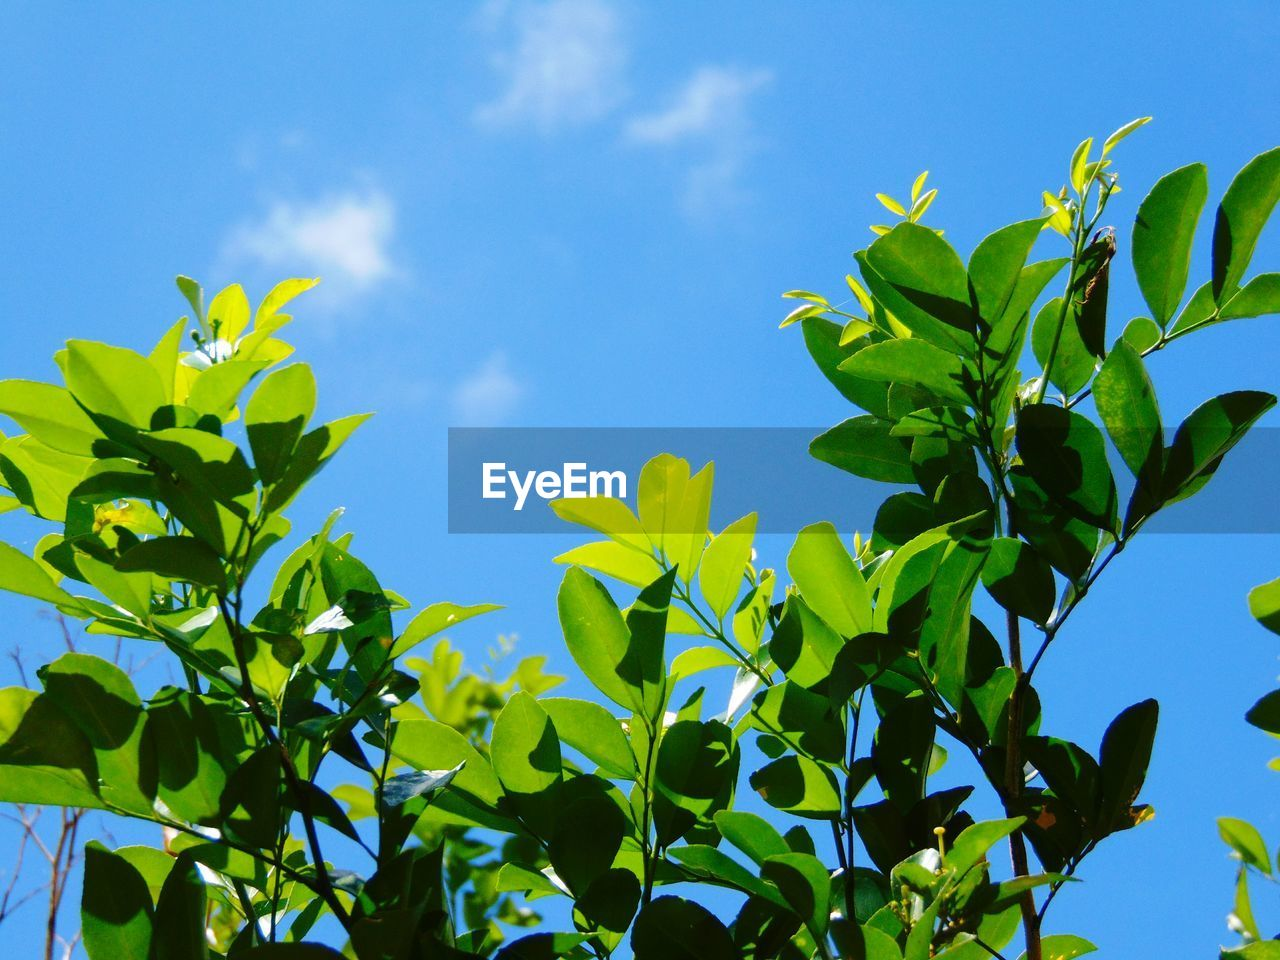 LOW ANGLE VIEW OF FRESH GREEN PLANTS AGAINST BLUE SKY